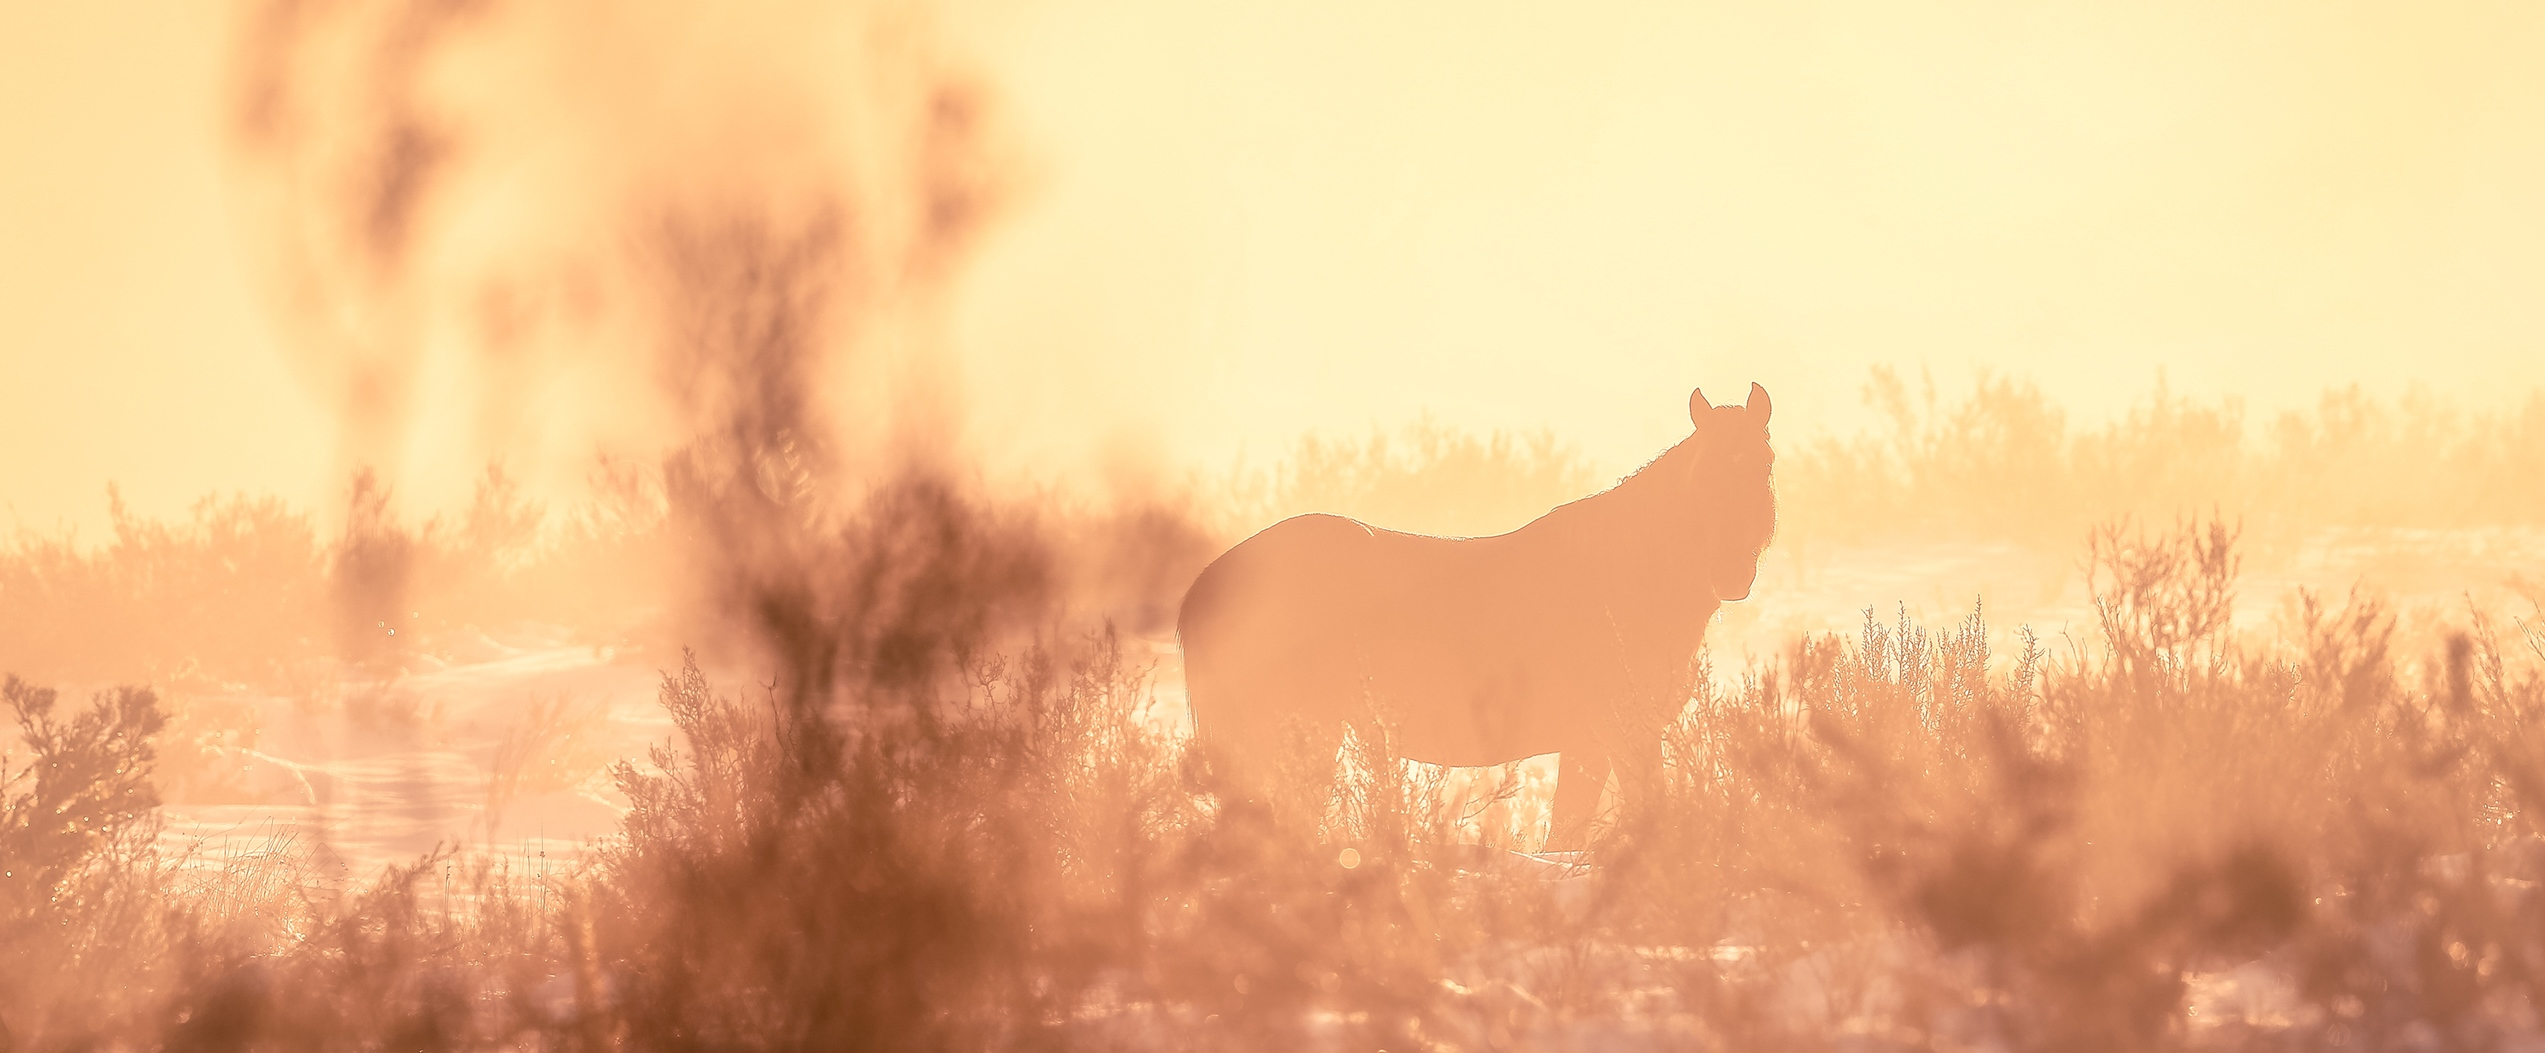 Reunited with the Lone Palomino Brumby at Sunrise: Australian Snowy Mountains, Wild Horses of the World